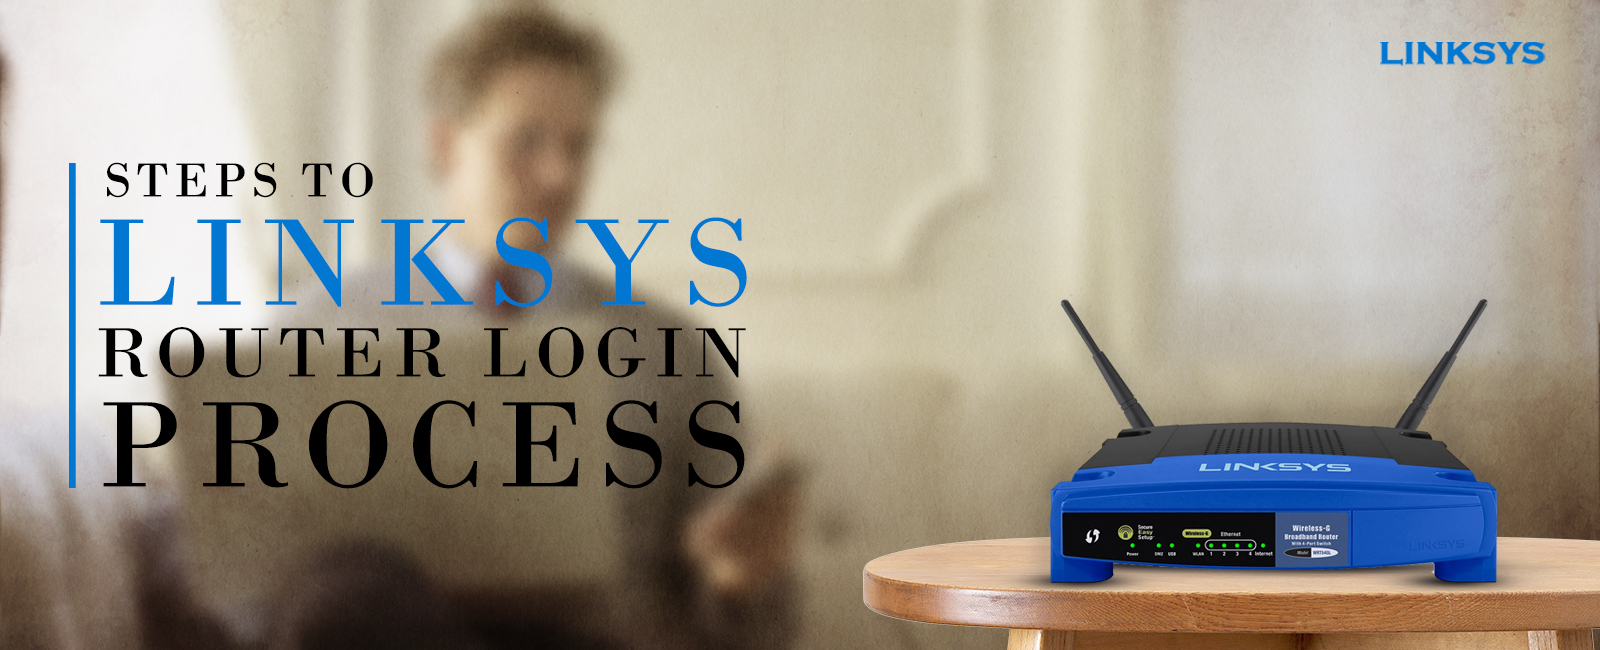 Steps Linksys router login process